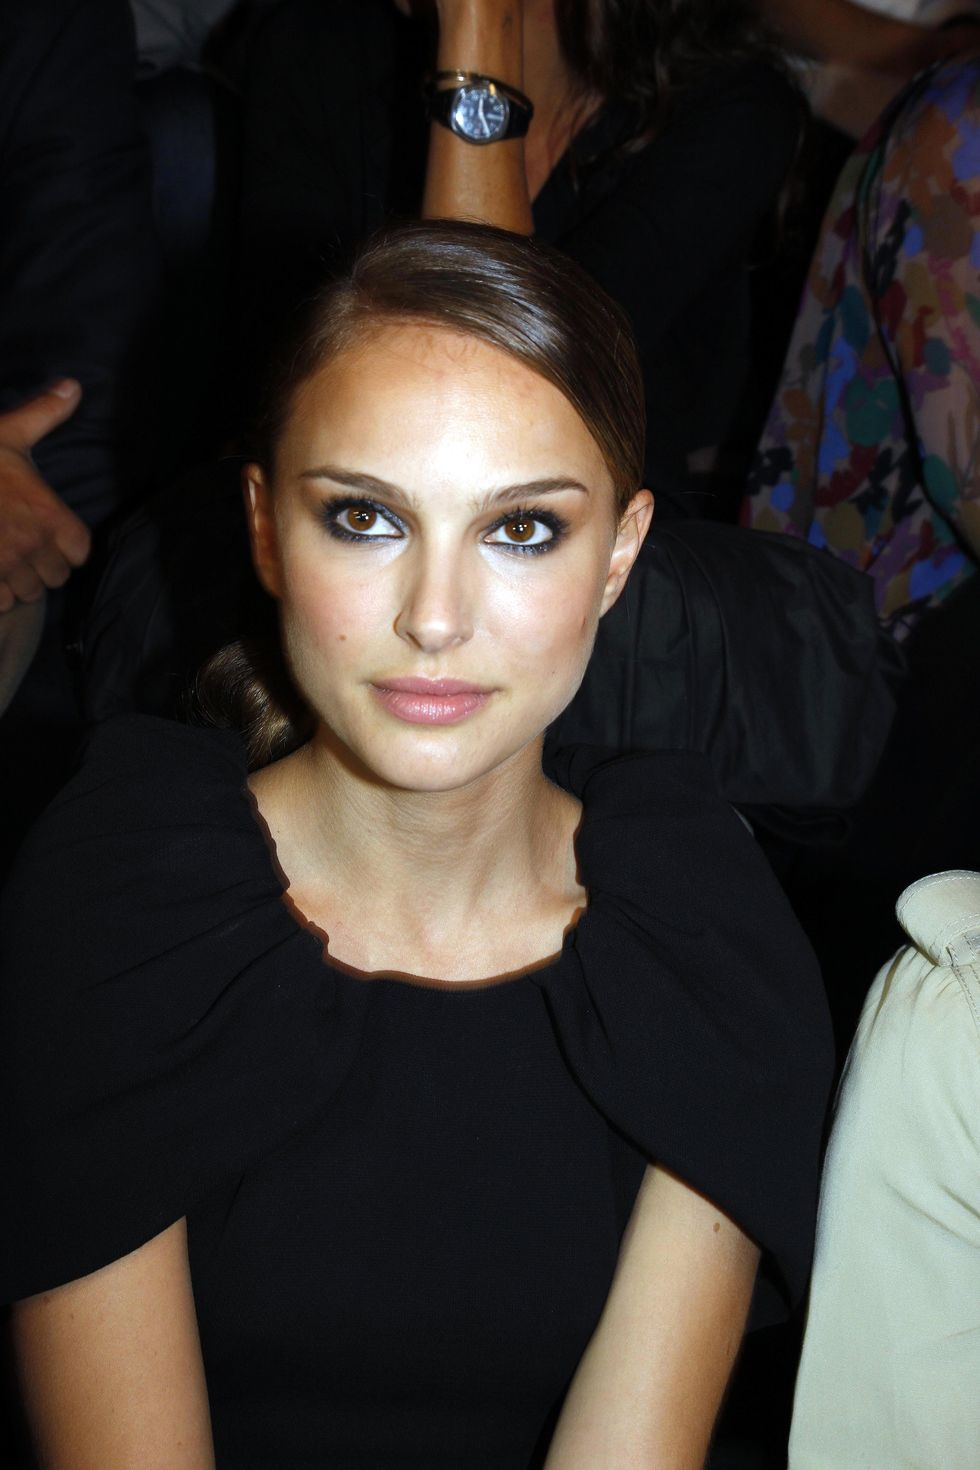 natalie-portman-giambattista-valli-fashion-show-in-paris-01